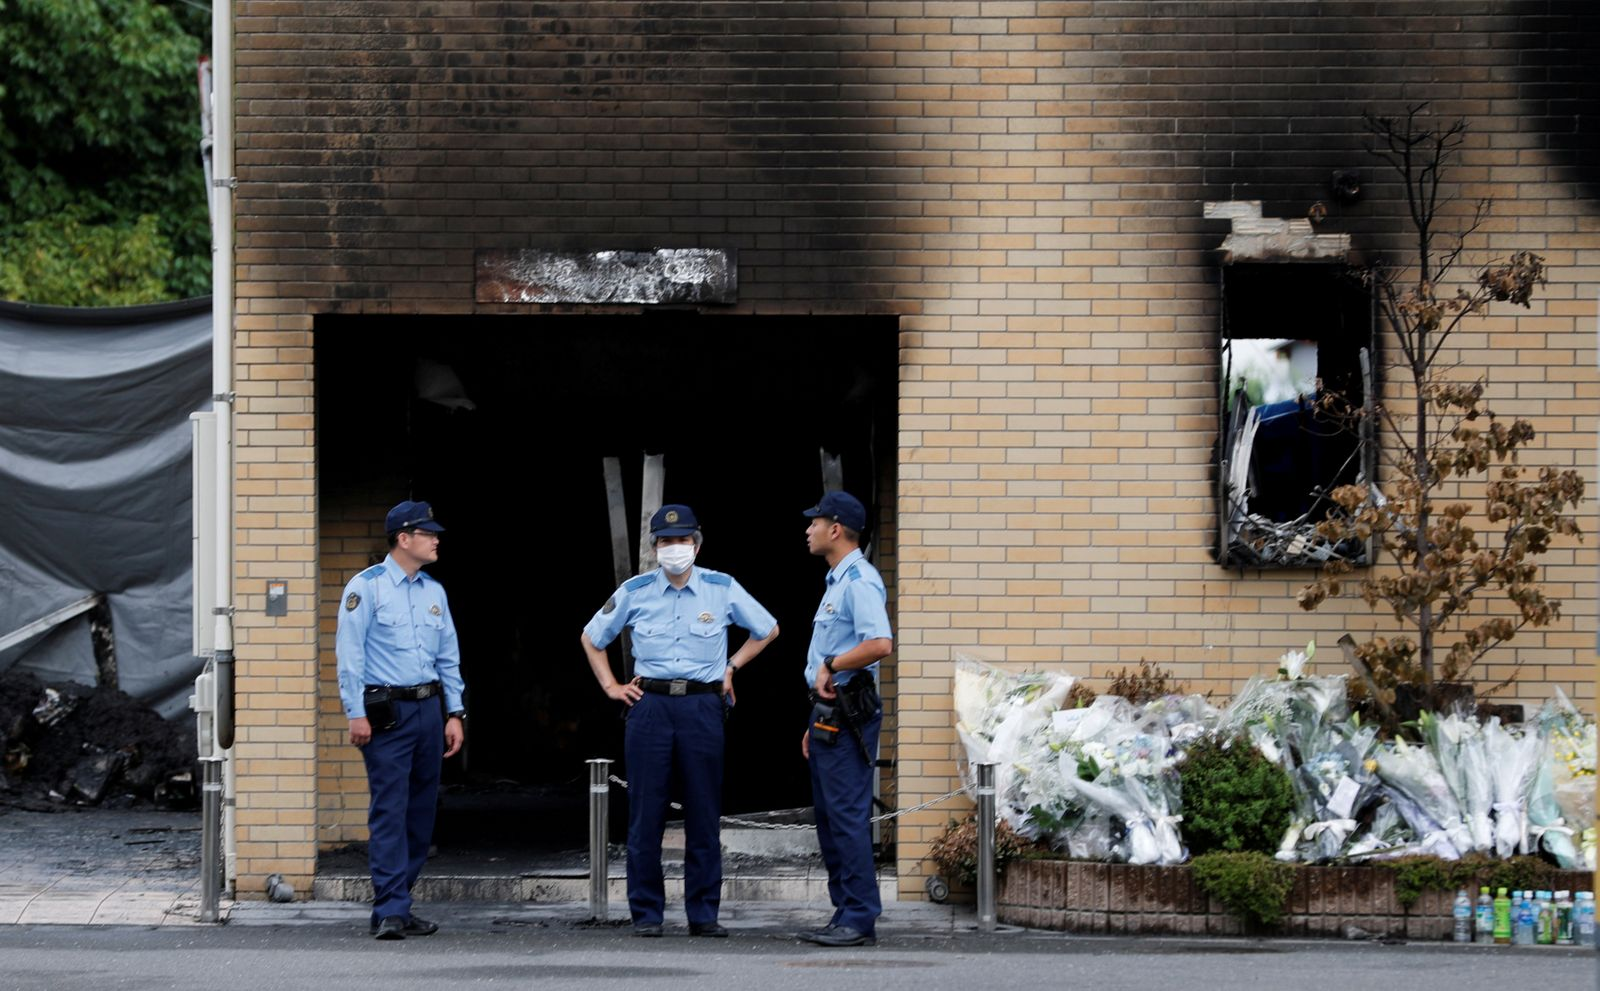 FILE PHOTO: Policemen are seen at the torched Kyoto Animation building in Kyoto